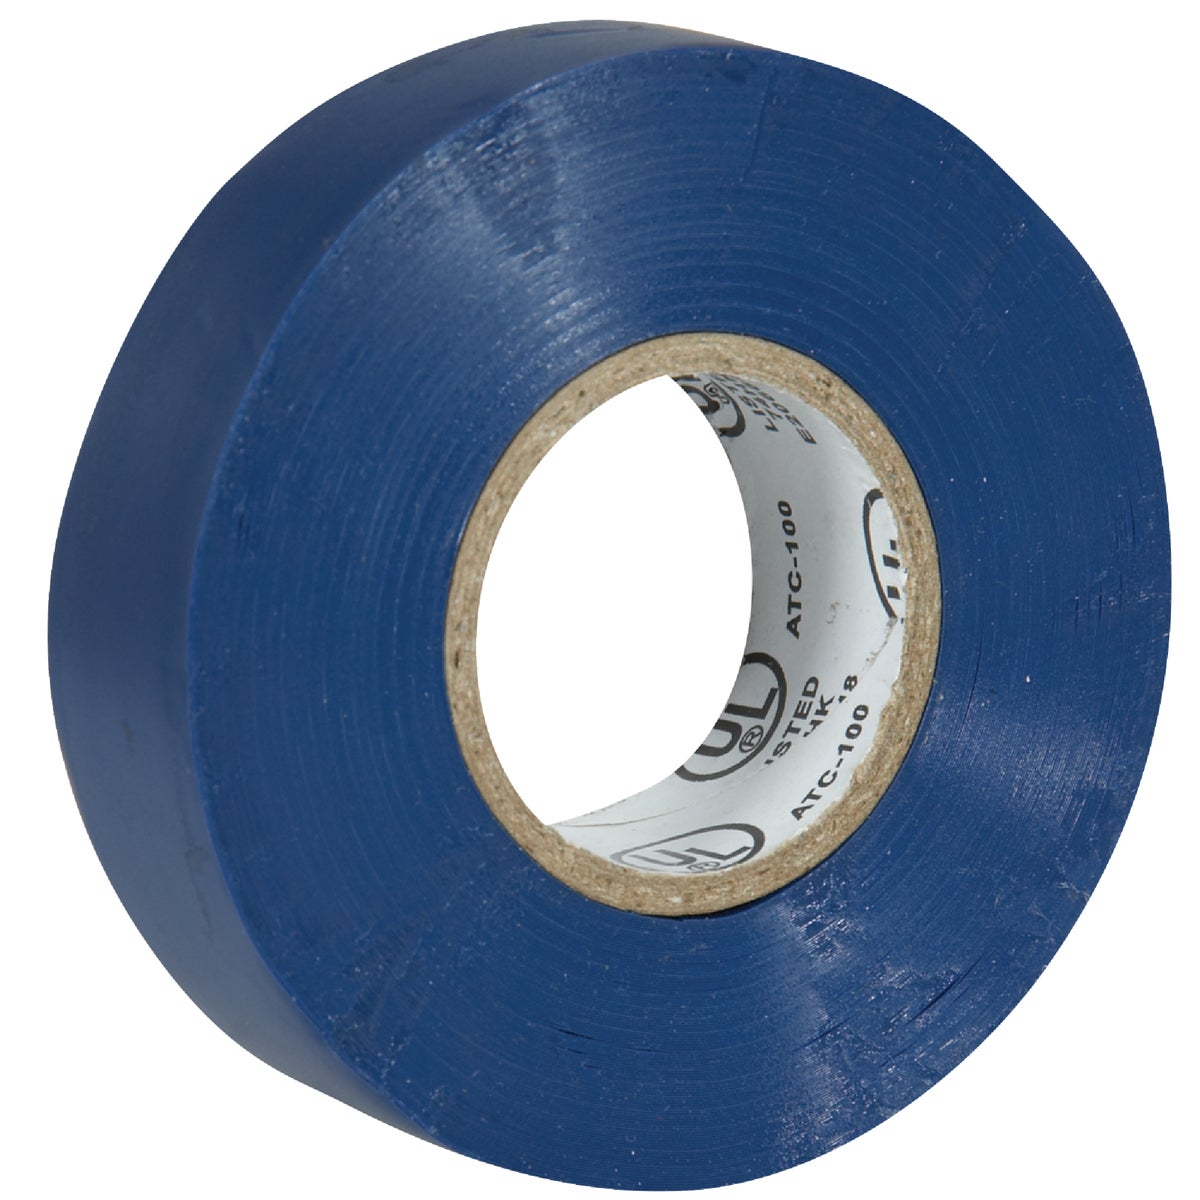 BLUE ELECTRICAL TAPE - 528250 by Do it Best